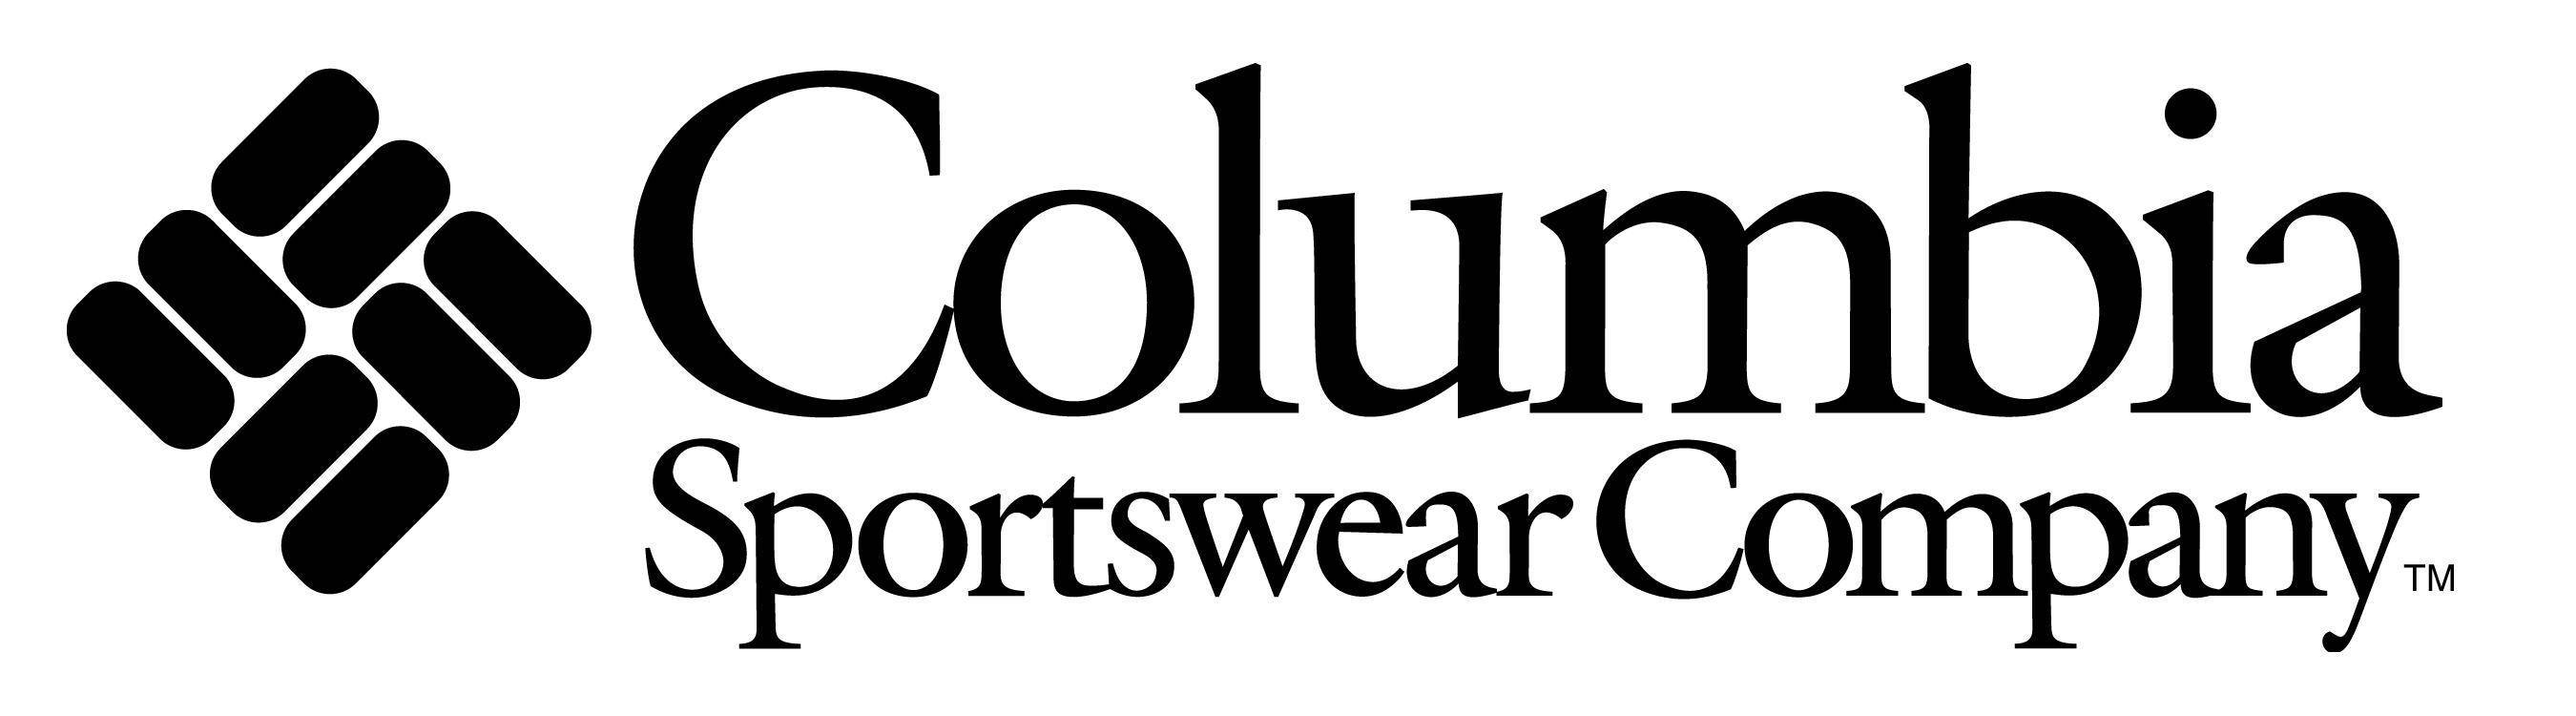 ec3b719c07d columbia sportswear corporate office headquarters customer service .